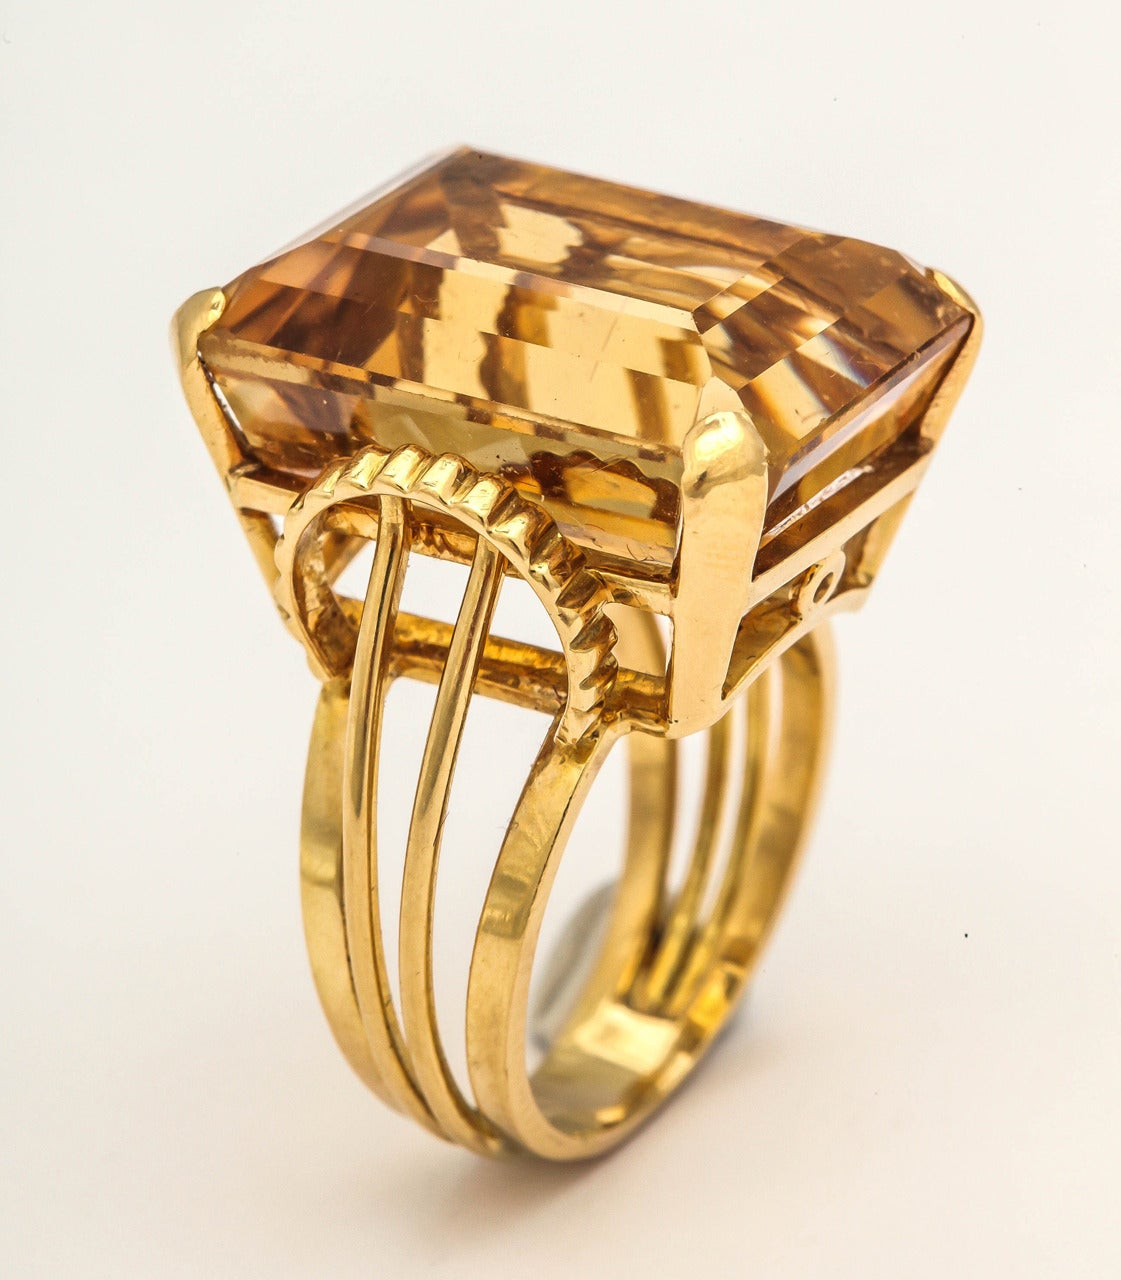 English Retro Citrine 18k Gold Cocktail Ring, 1950s For Sale 1